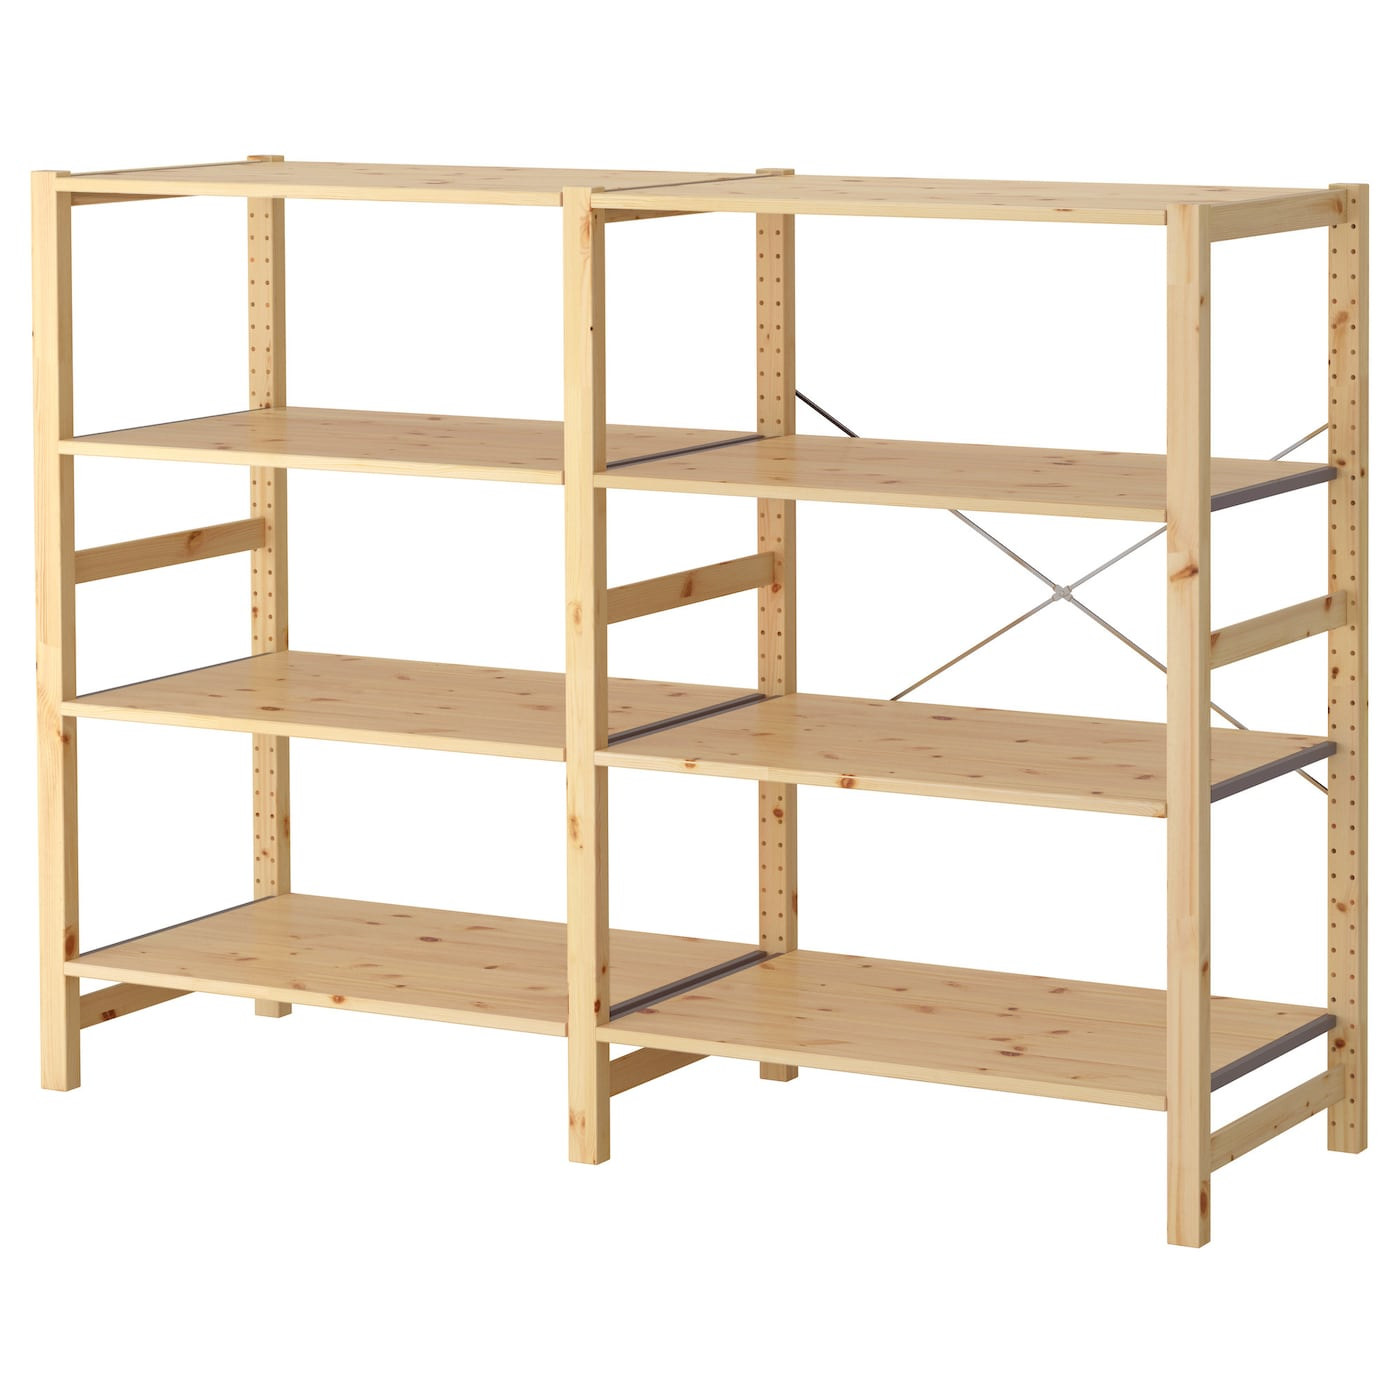 ivar 2 sections shelves pine 174 x 50 x 124 cm ikea. Black Bedroom Furniture Sets. Home Design Ideas